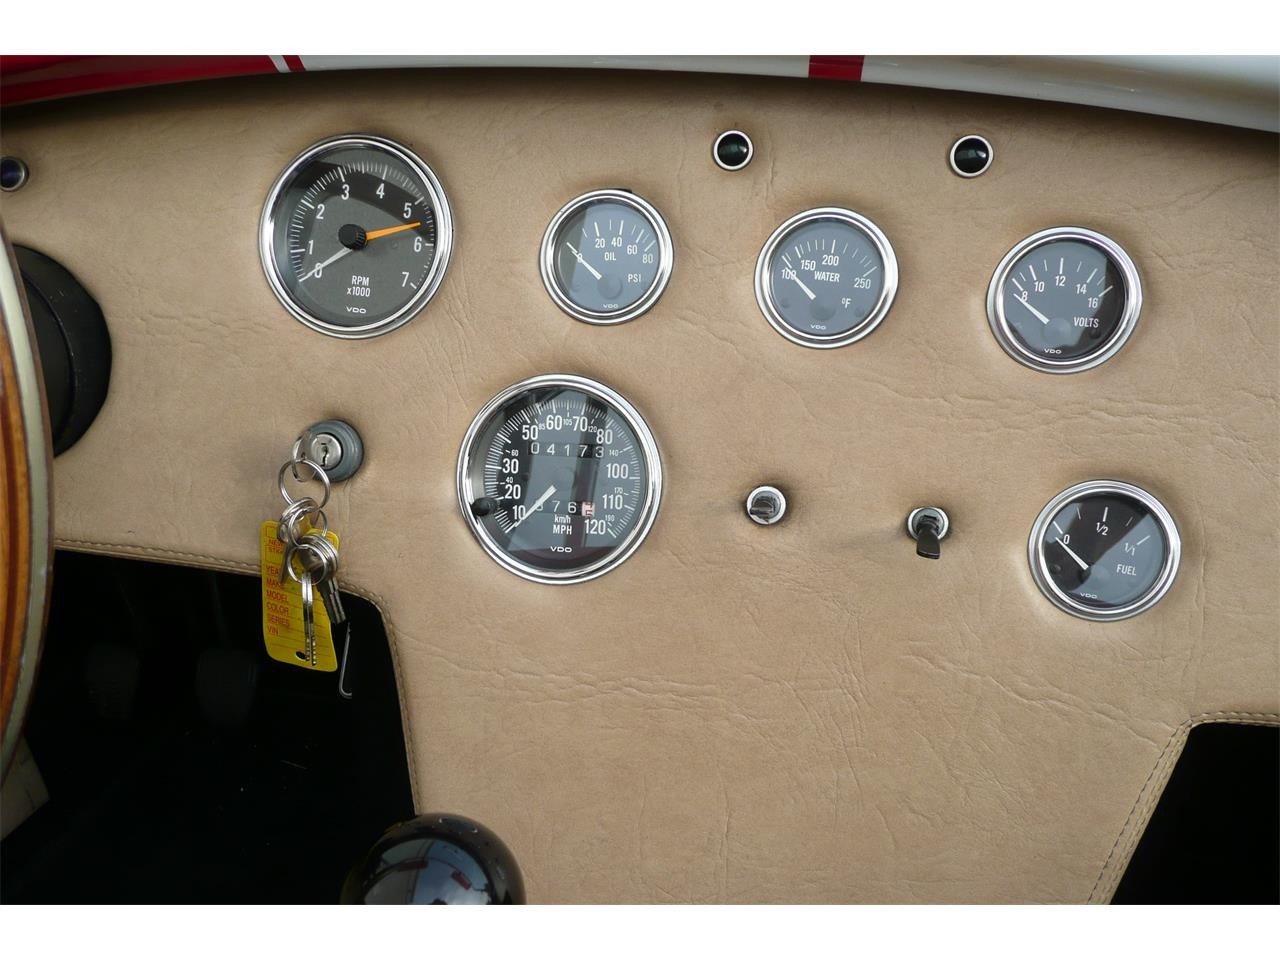 Large Picture of 1967 AC Cobra Replica Cobra - $37,900.00 Offered by a Private Seller - J5C6